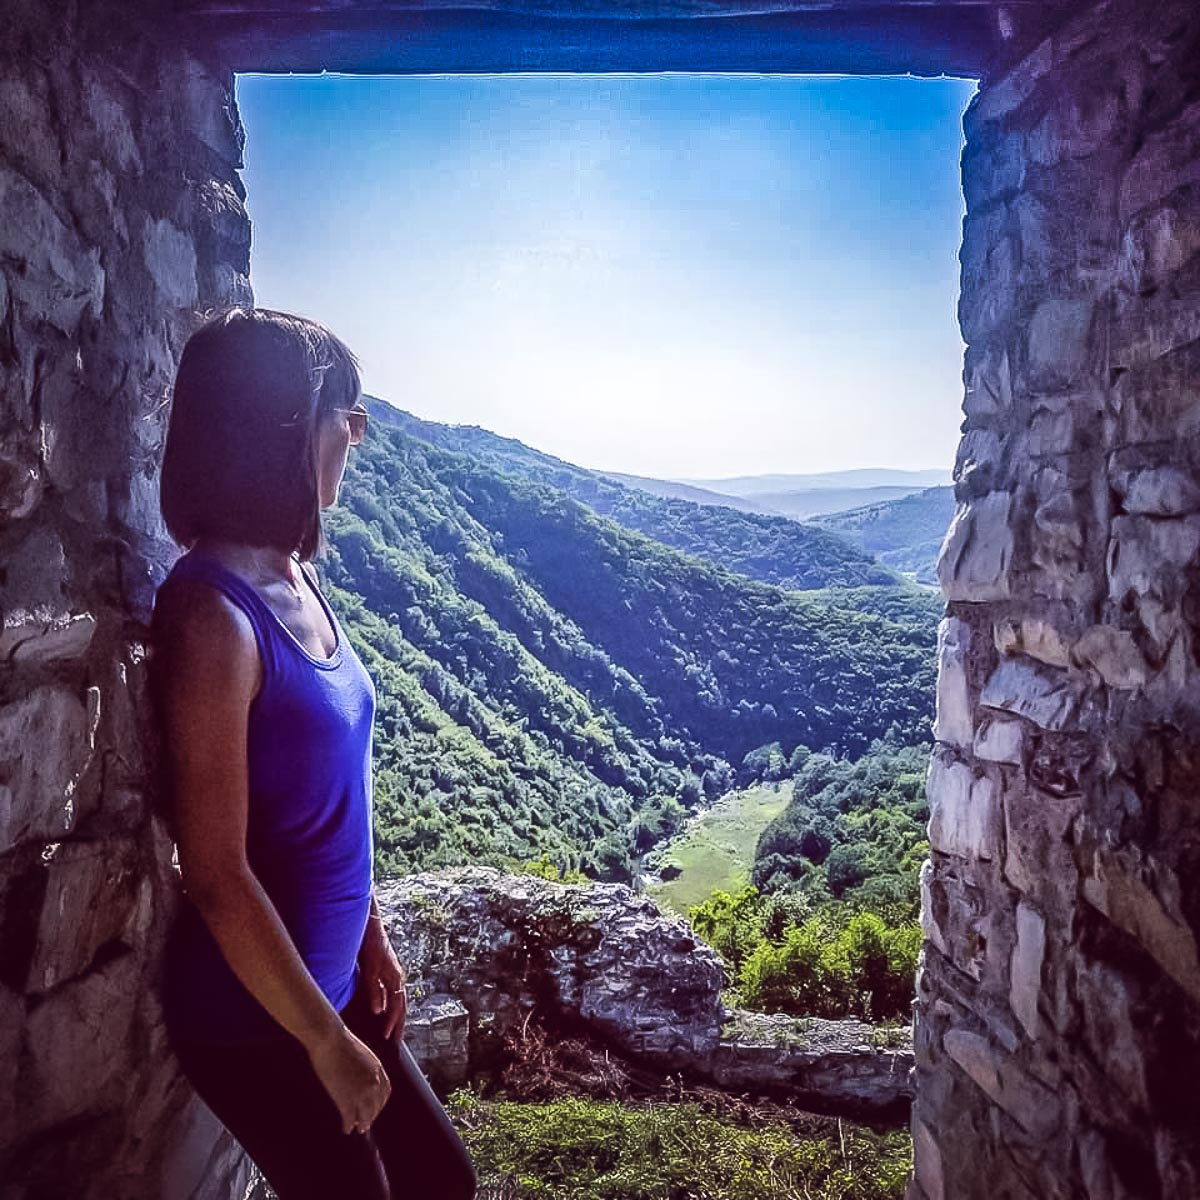 Guest Post by Lavdi - Kosovo Girl Travels